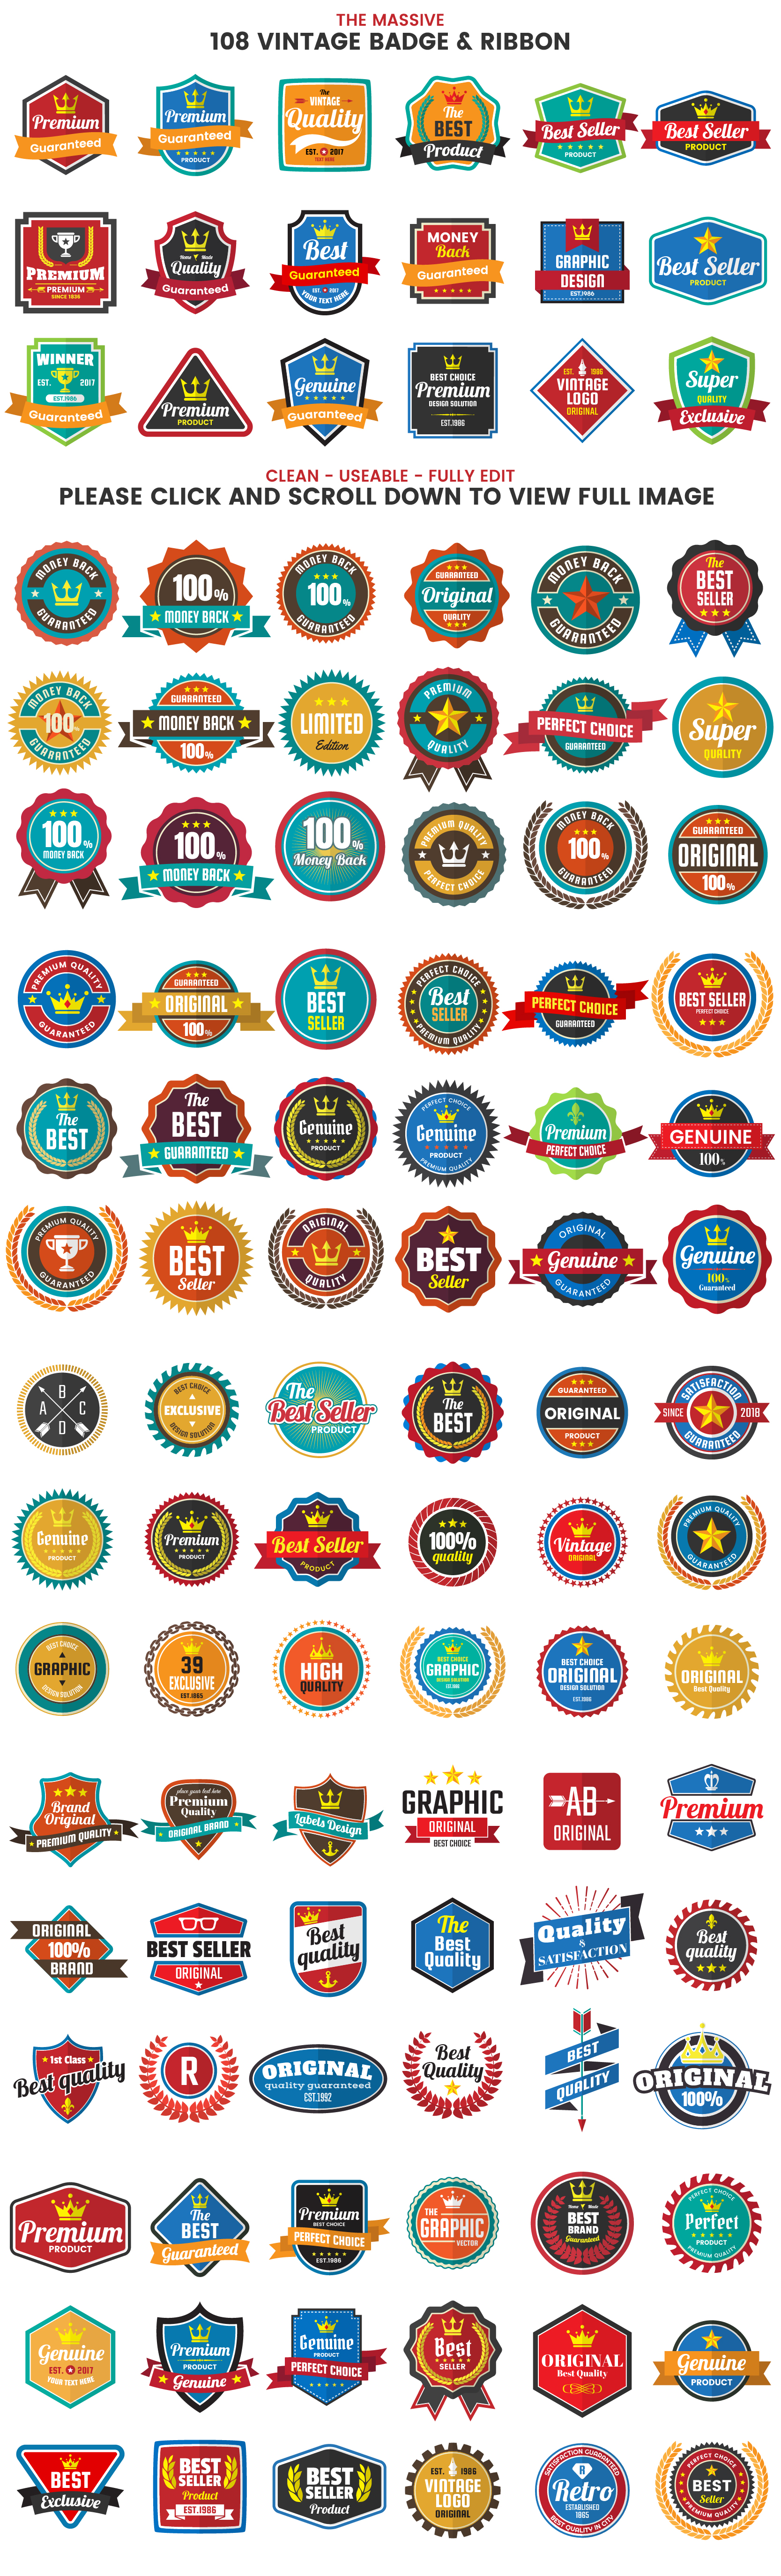 1046 VINTAGE BADGE & RIBBON example image 5